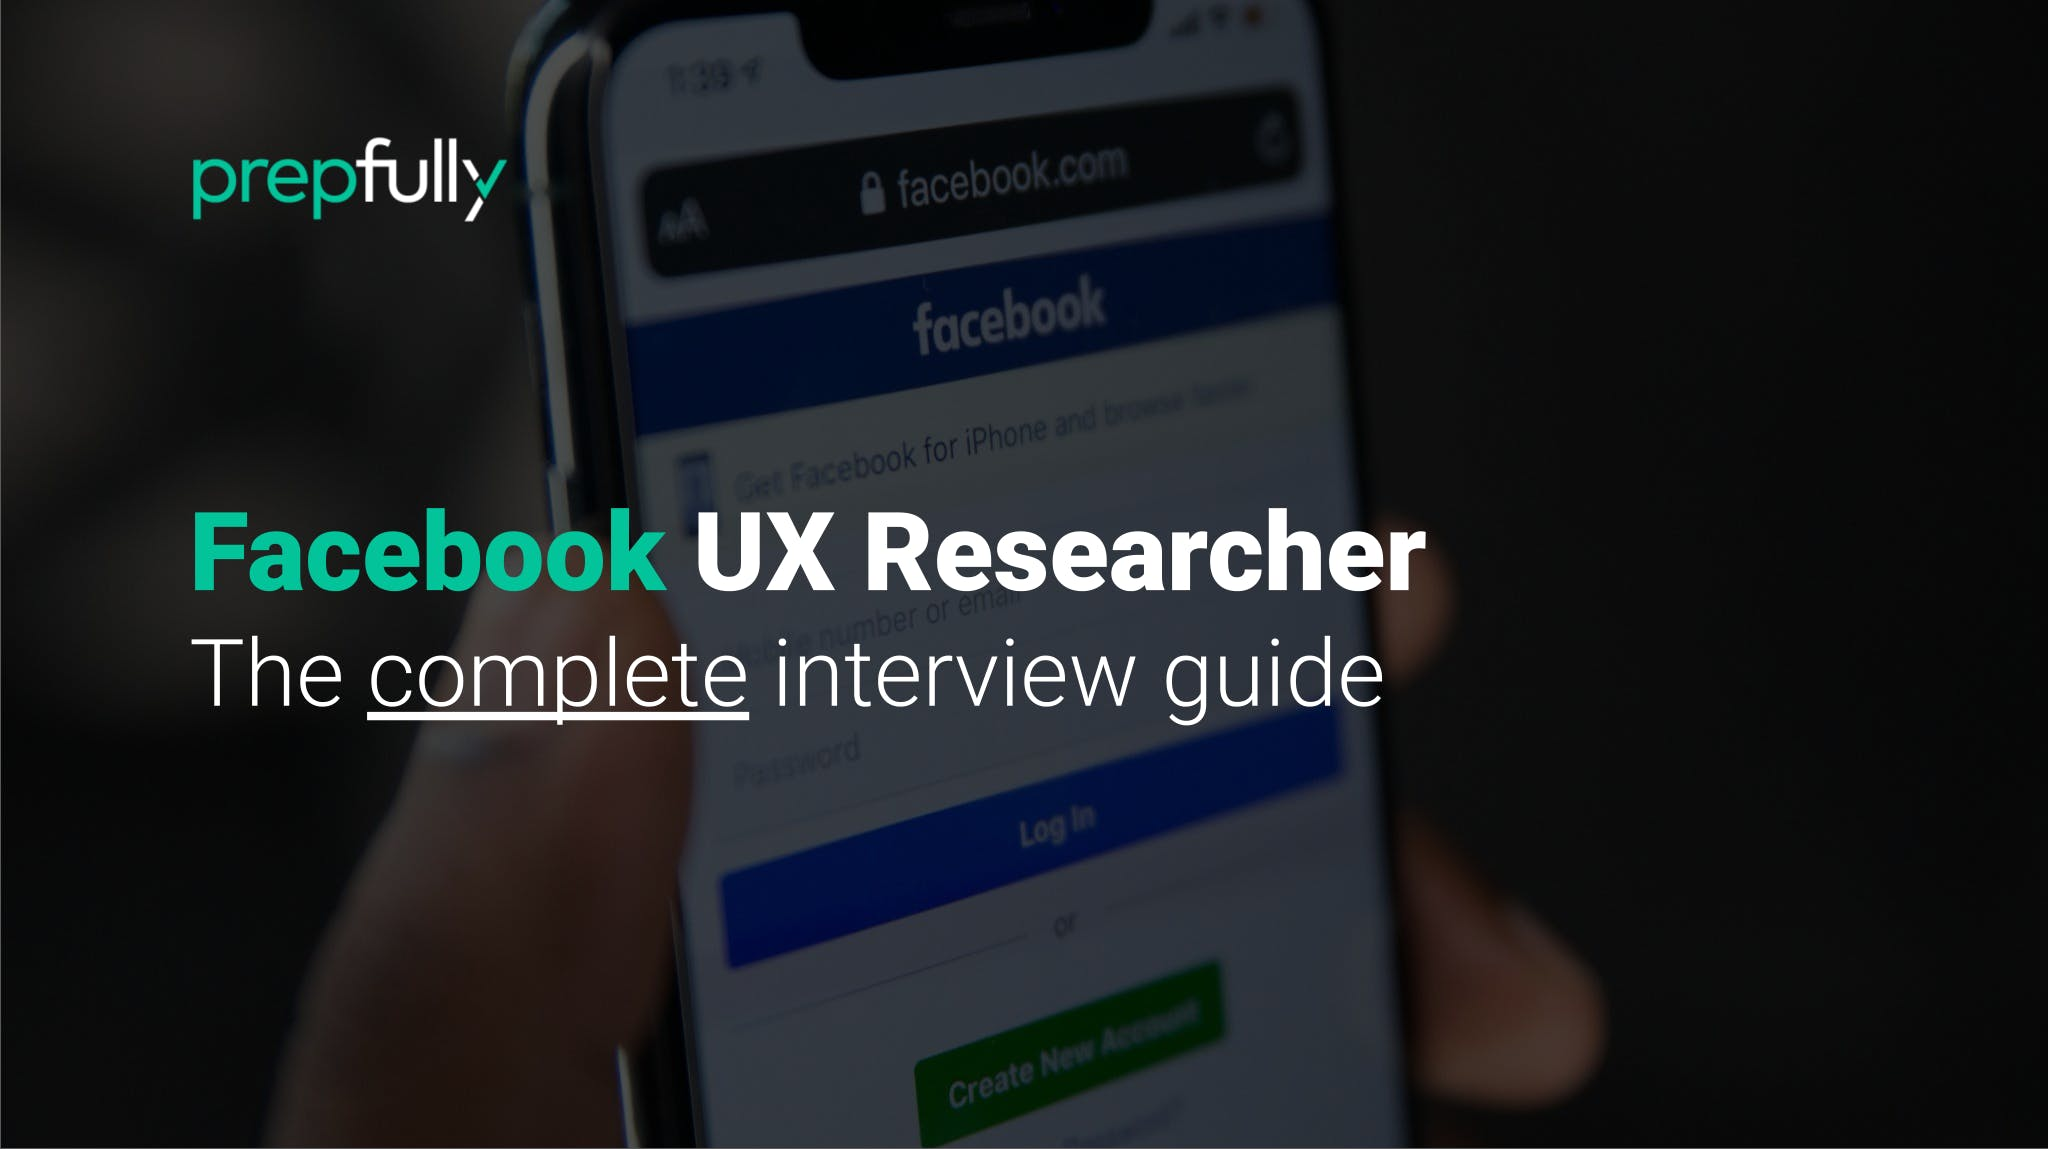 Interview guide for Facebook UX Researcher